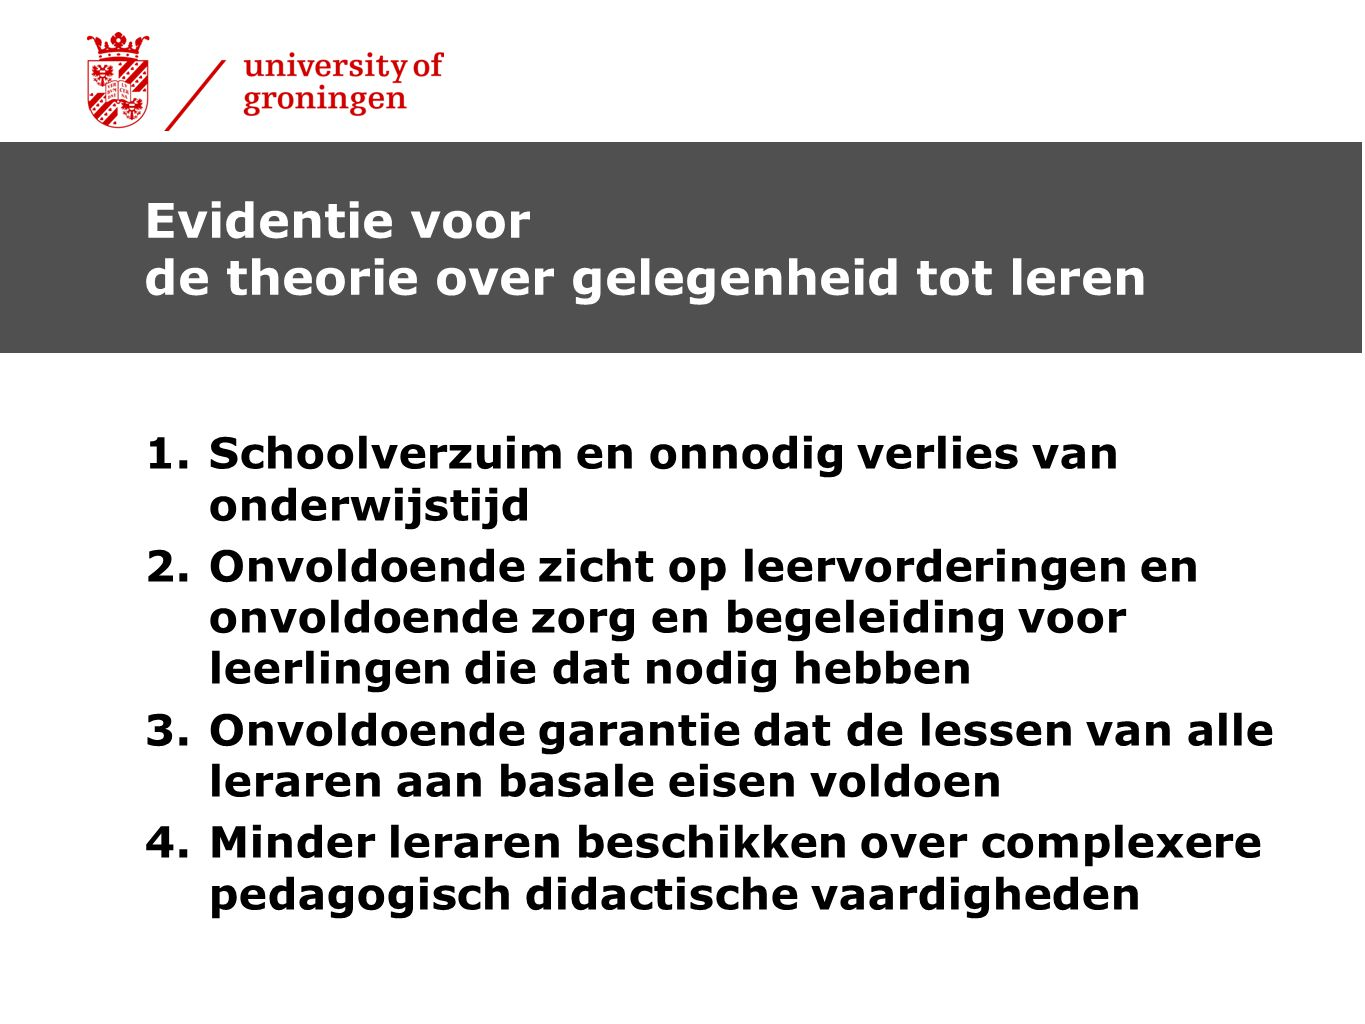 de theorie over gelegenheid tot leren